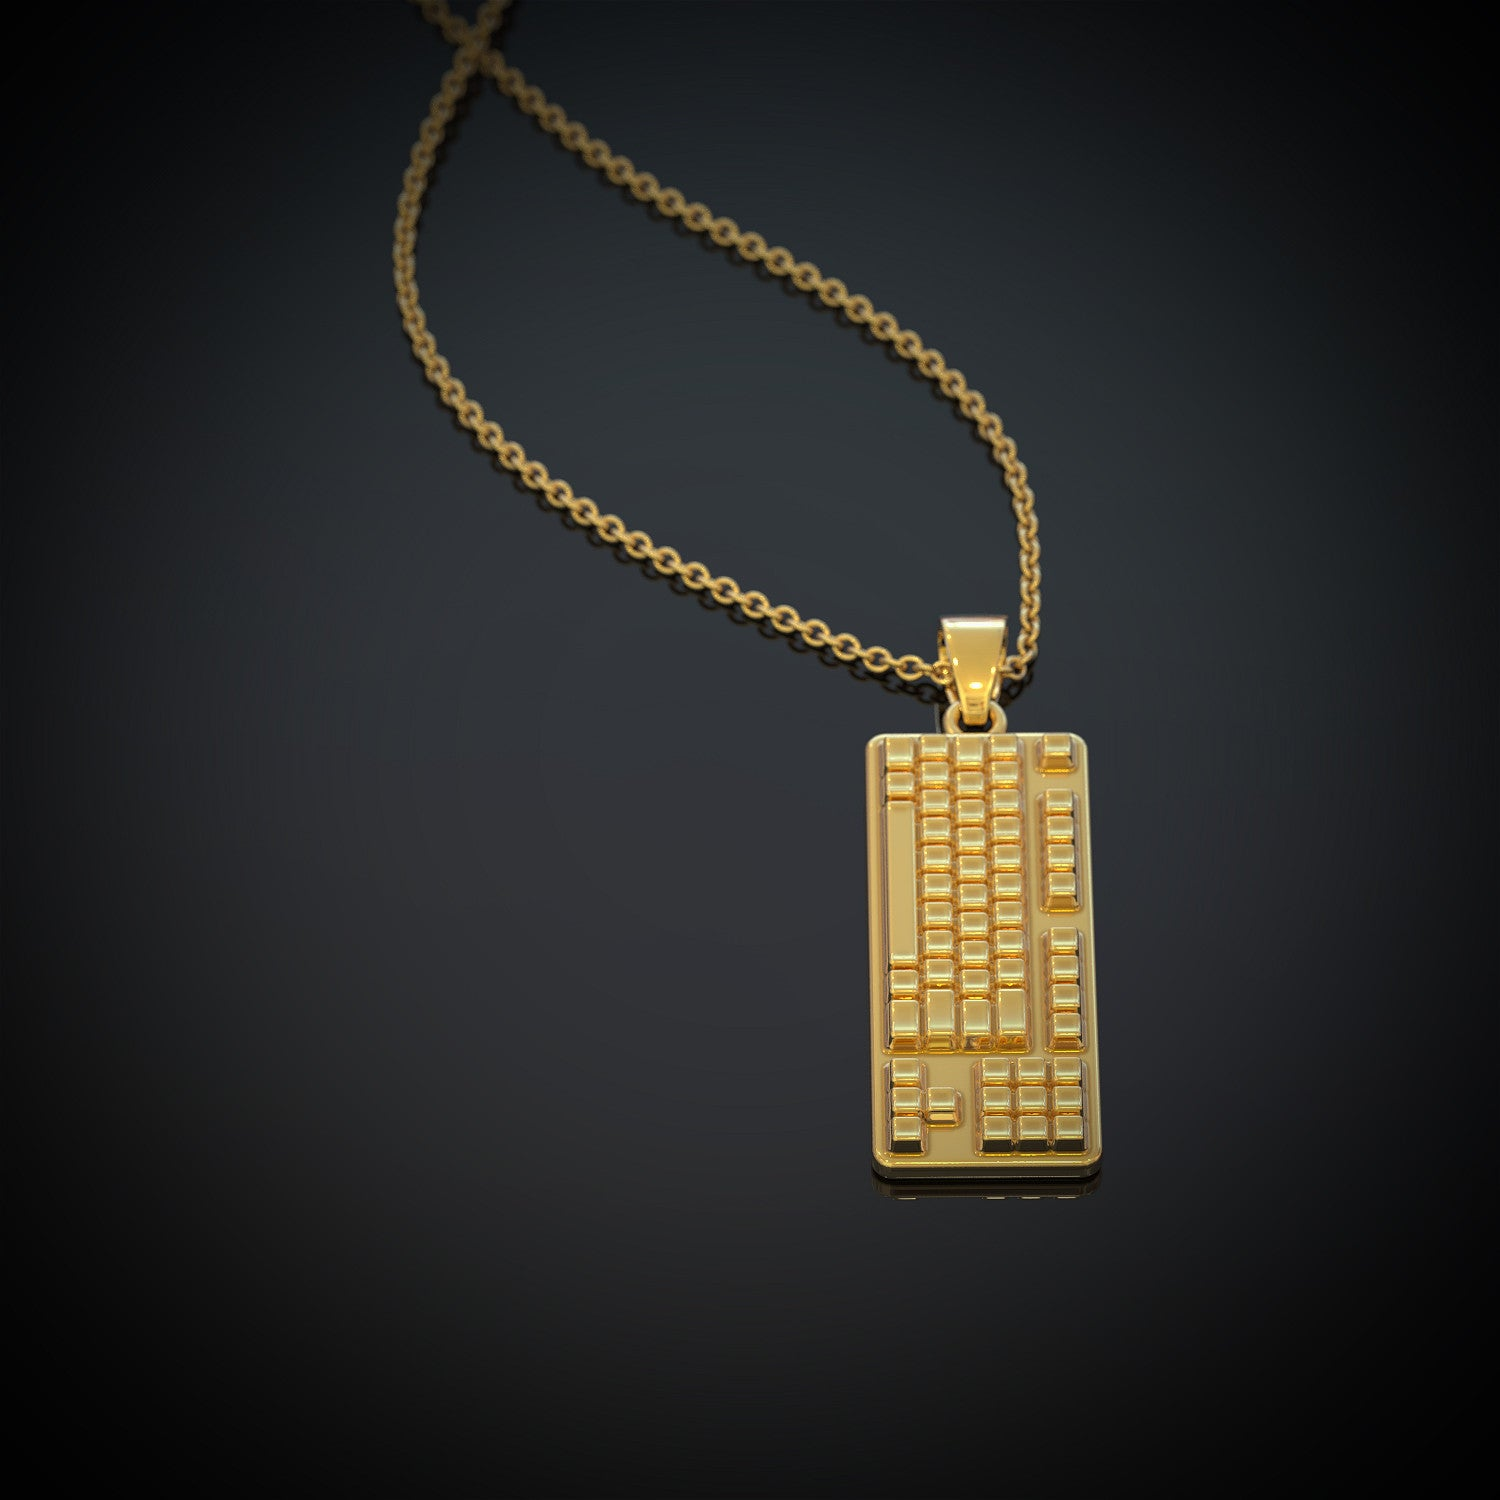 Keyboard - Necklace - strictly limited edition